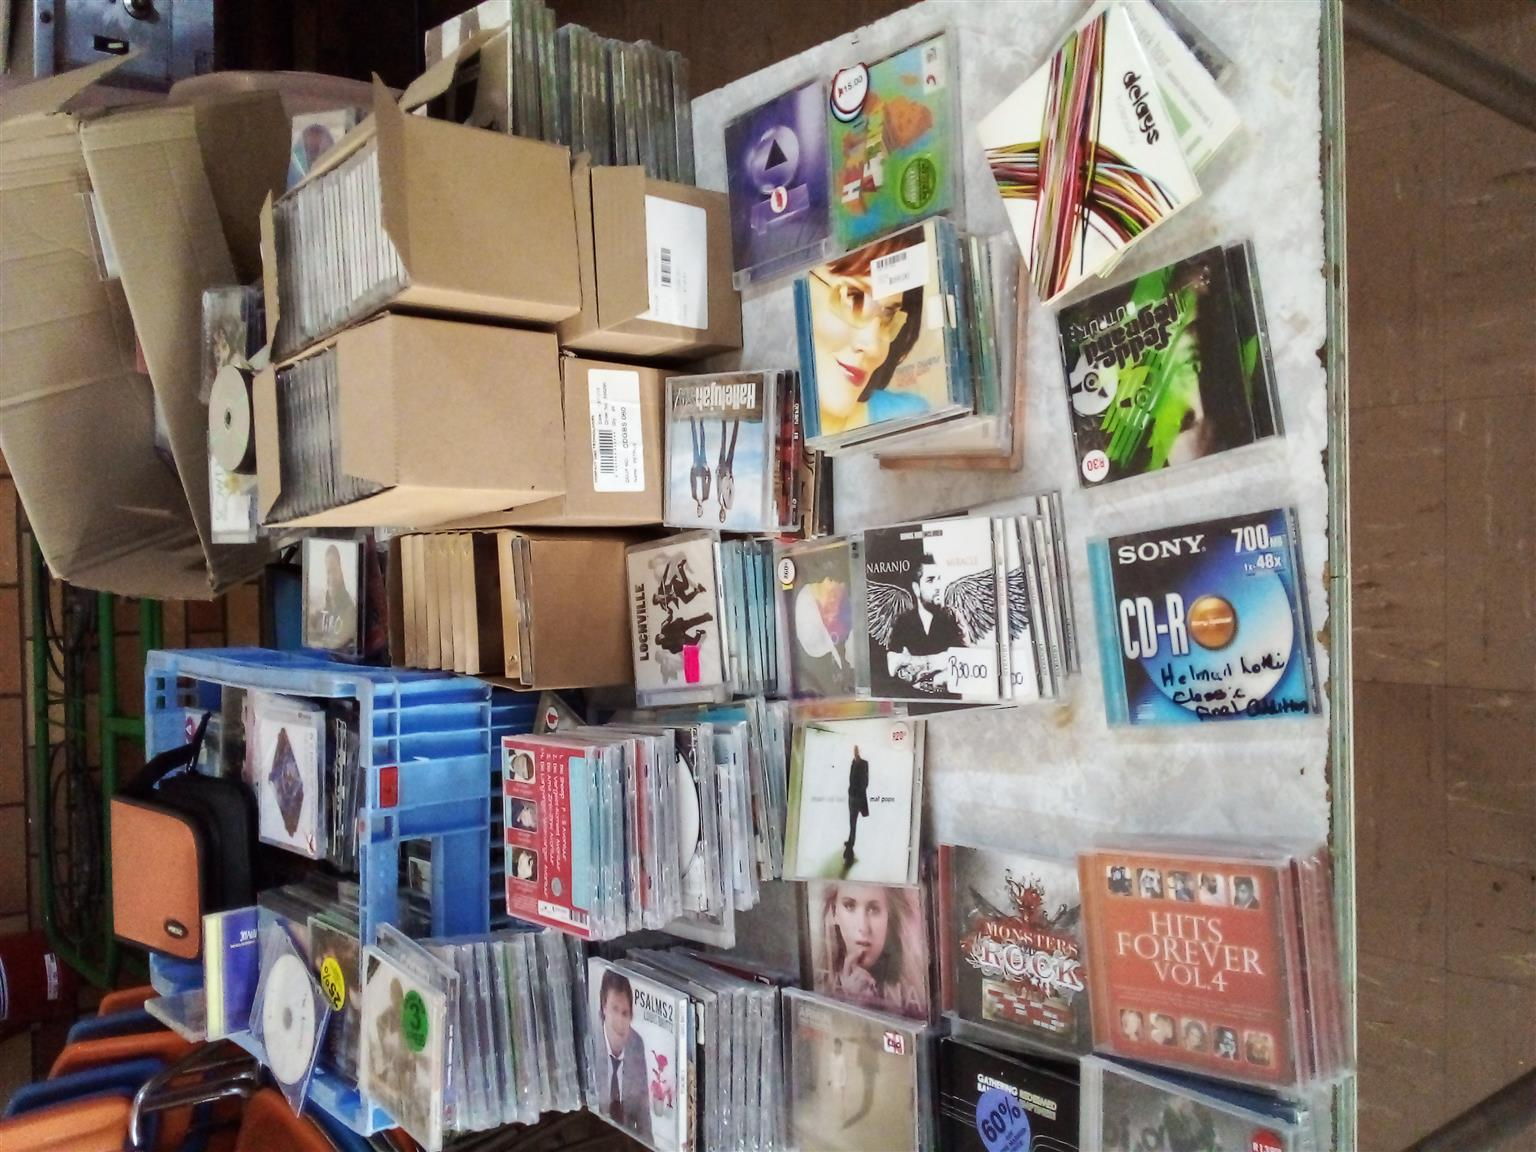 Job lot of CD , LP records and DVD For Sale